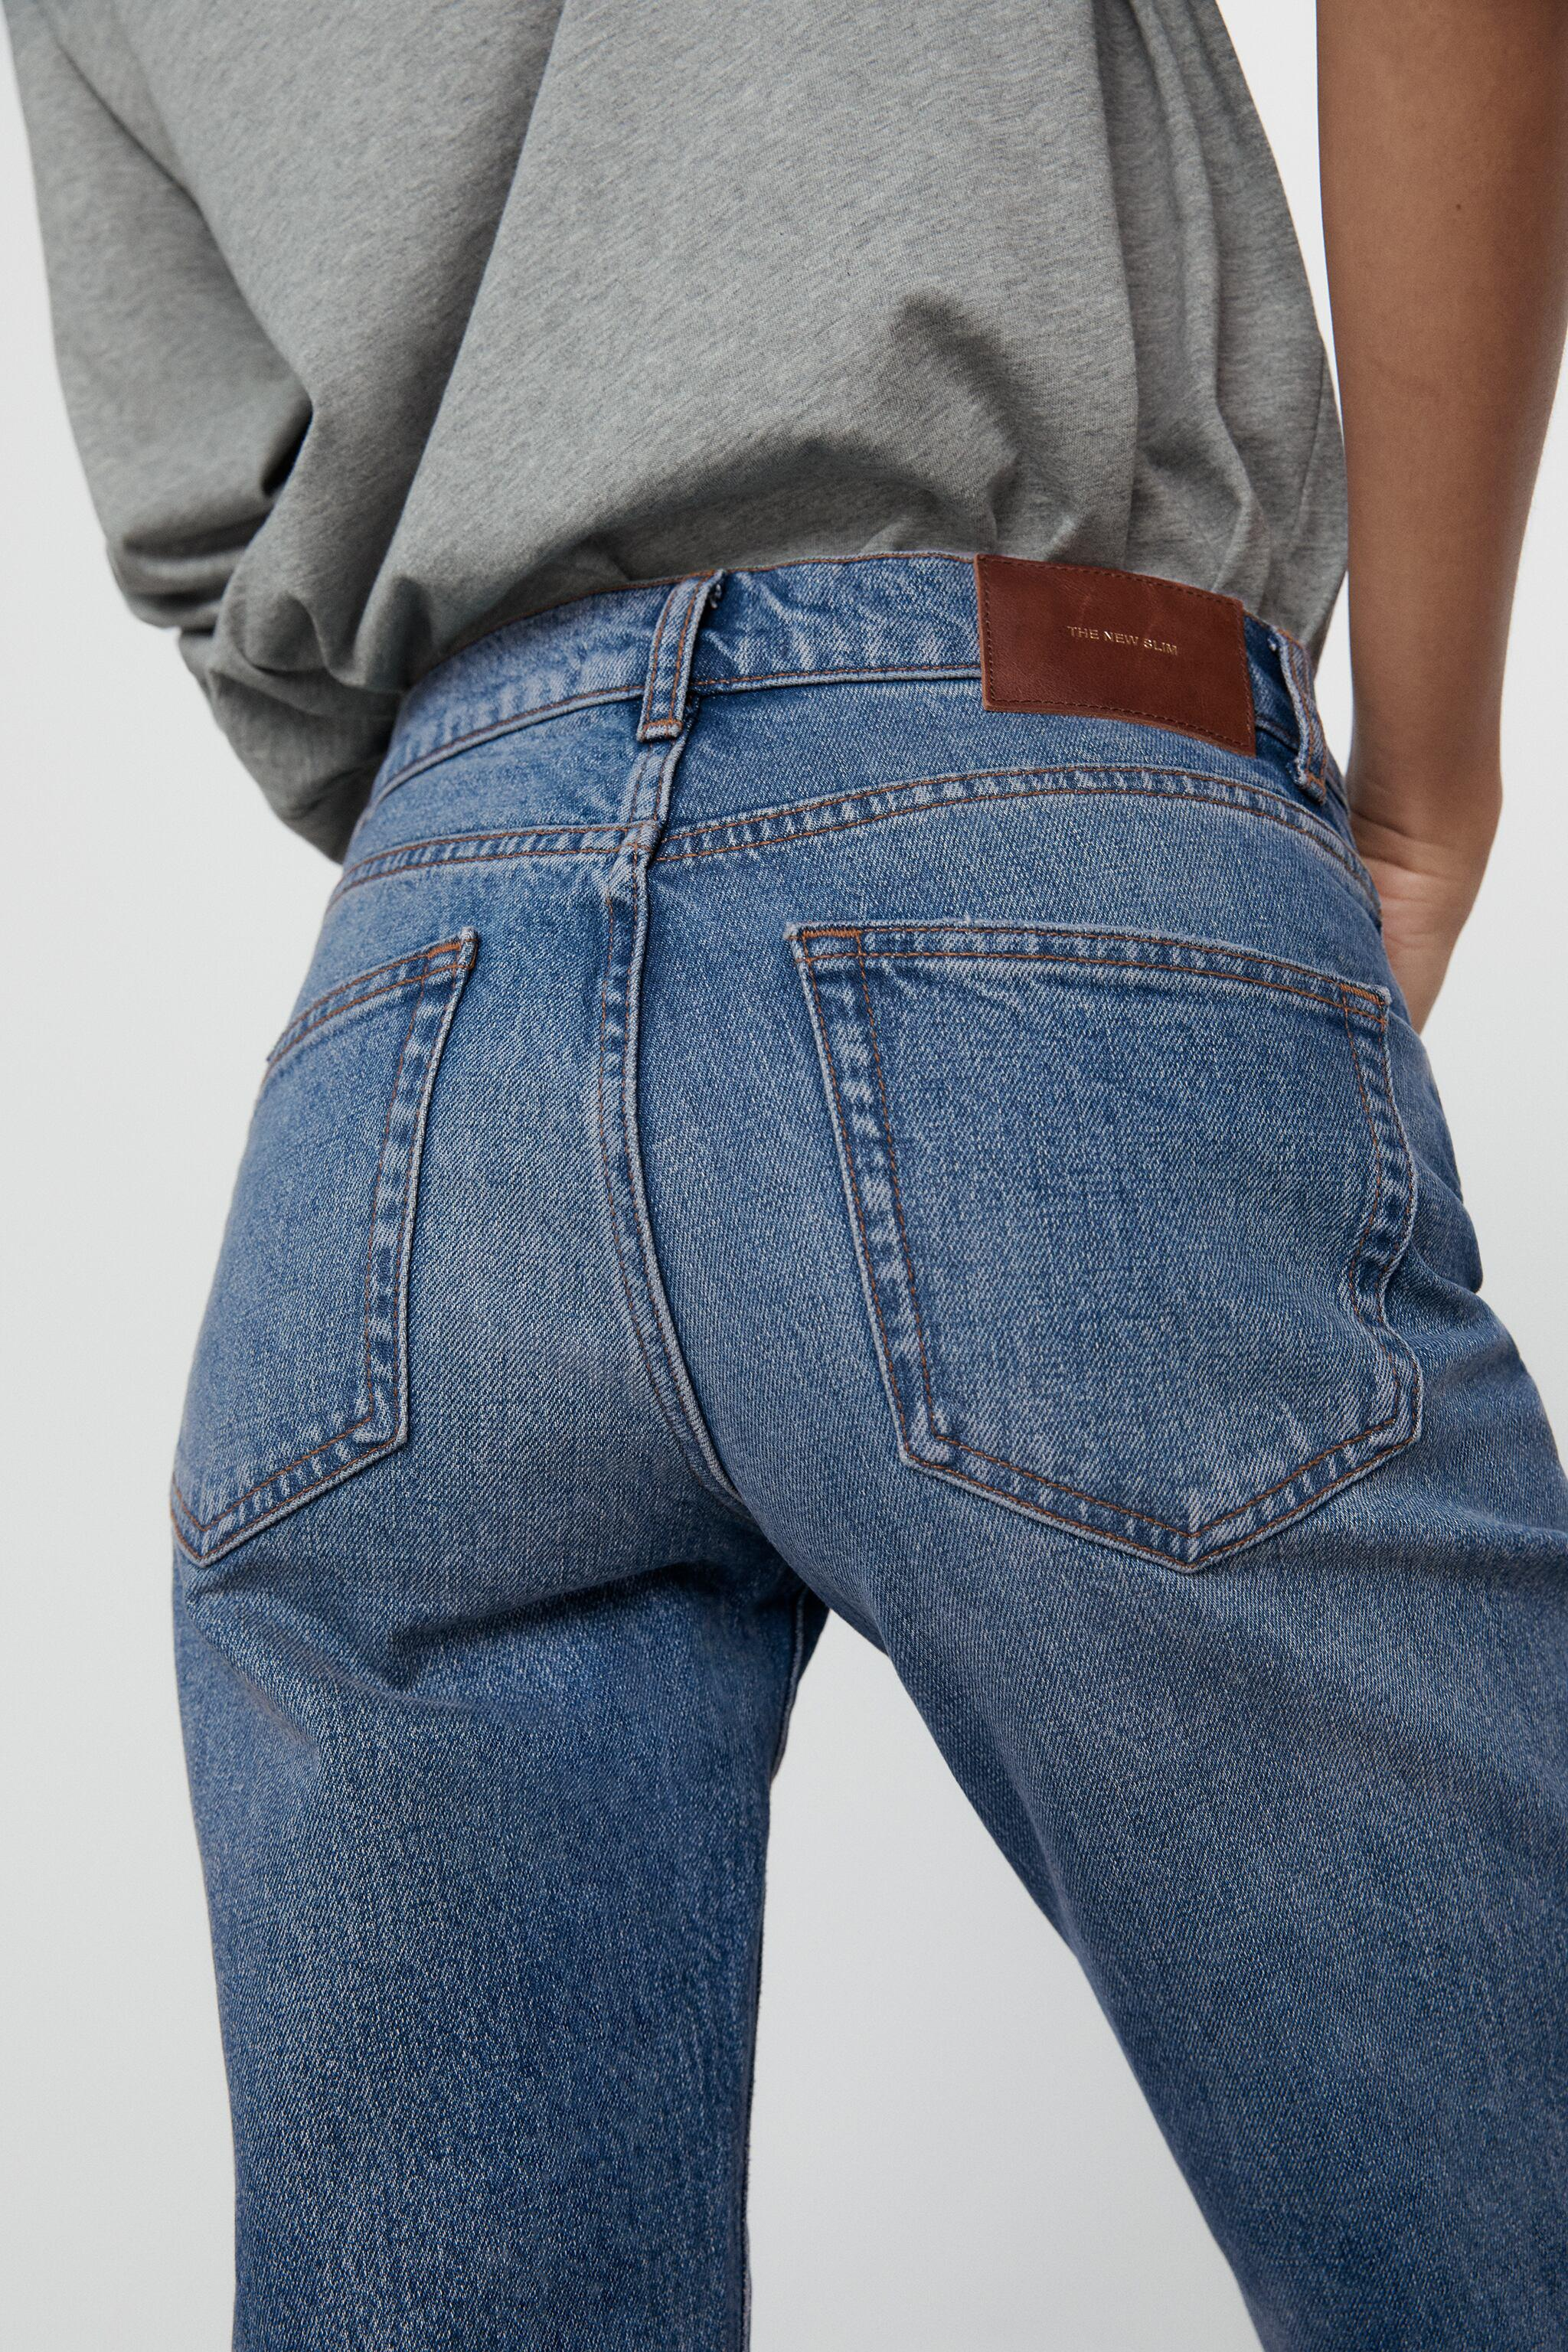 ZW THE NEW SLIM CROPPED JEANS 3